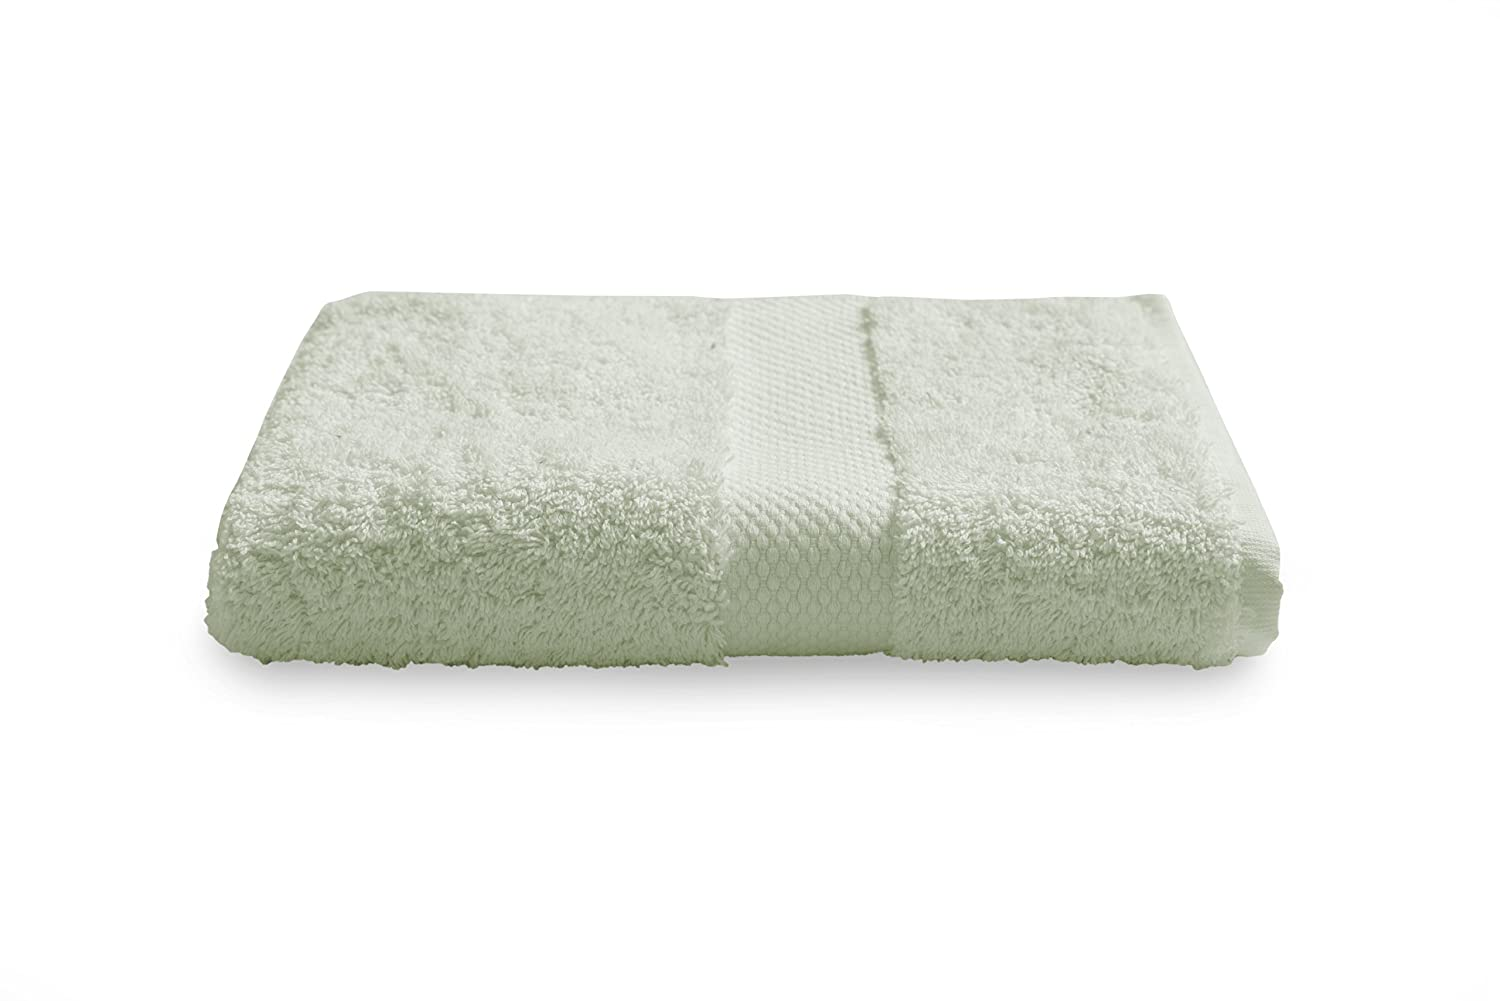 BALTIC LINEN COMPANY Luxury Single Ply 100-Percent Turkish Cotton Hand Towel Sage 0351635150 16 by 30-Inch